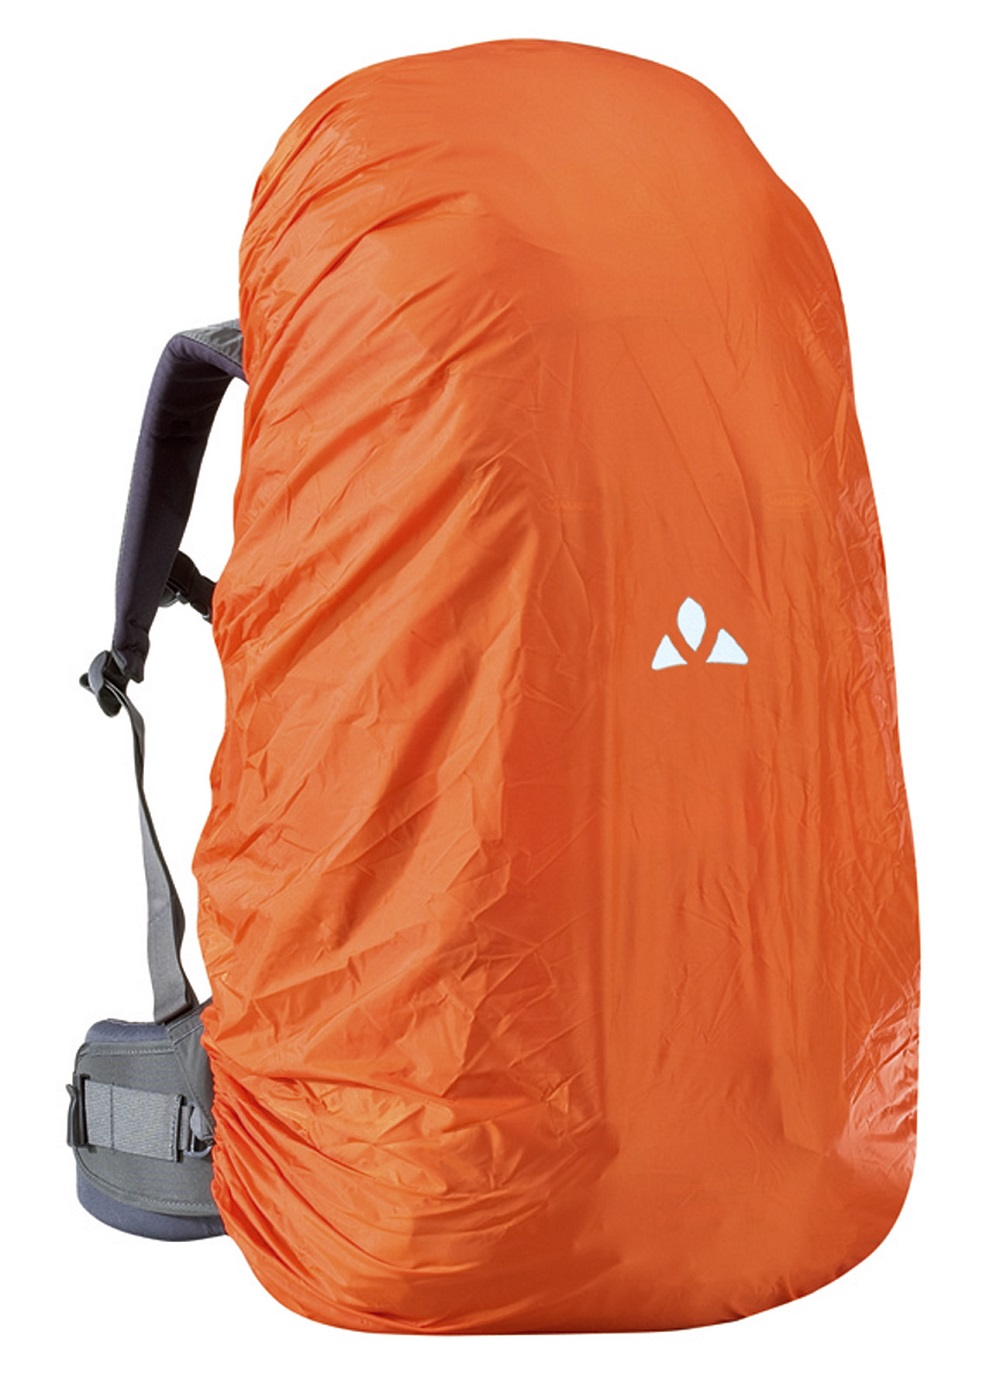 Raincover 15-30 for Backpacks